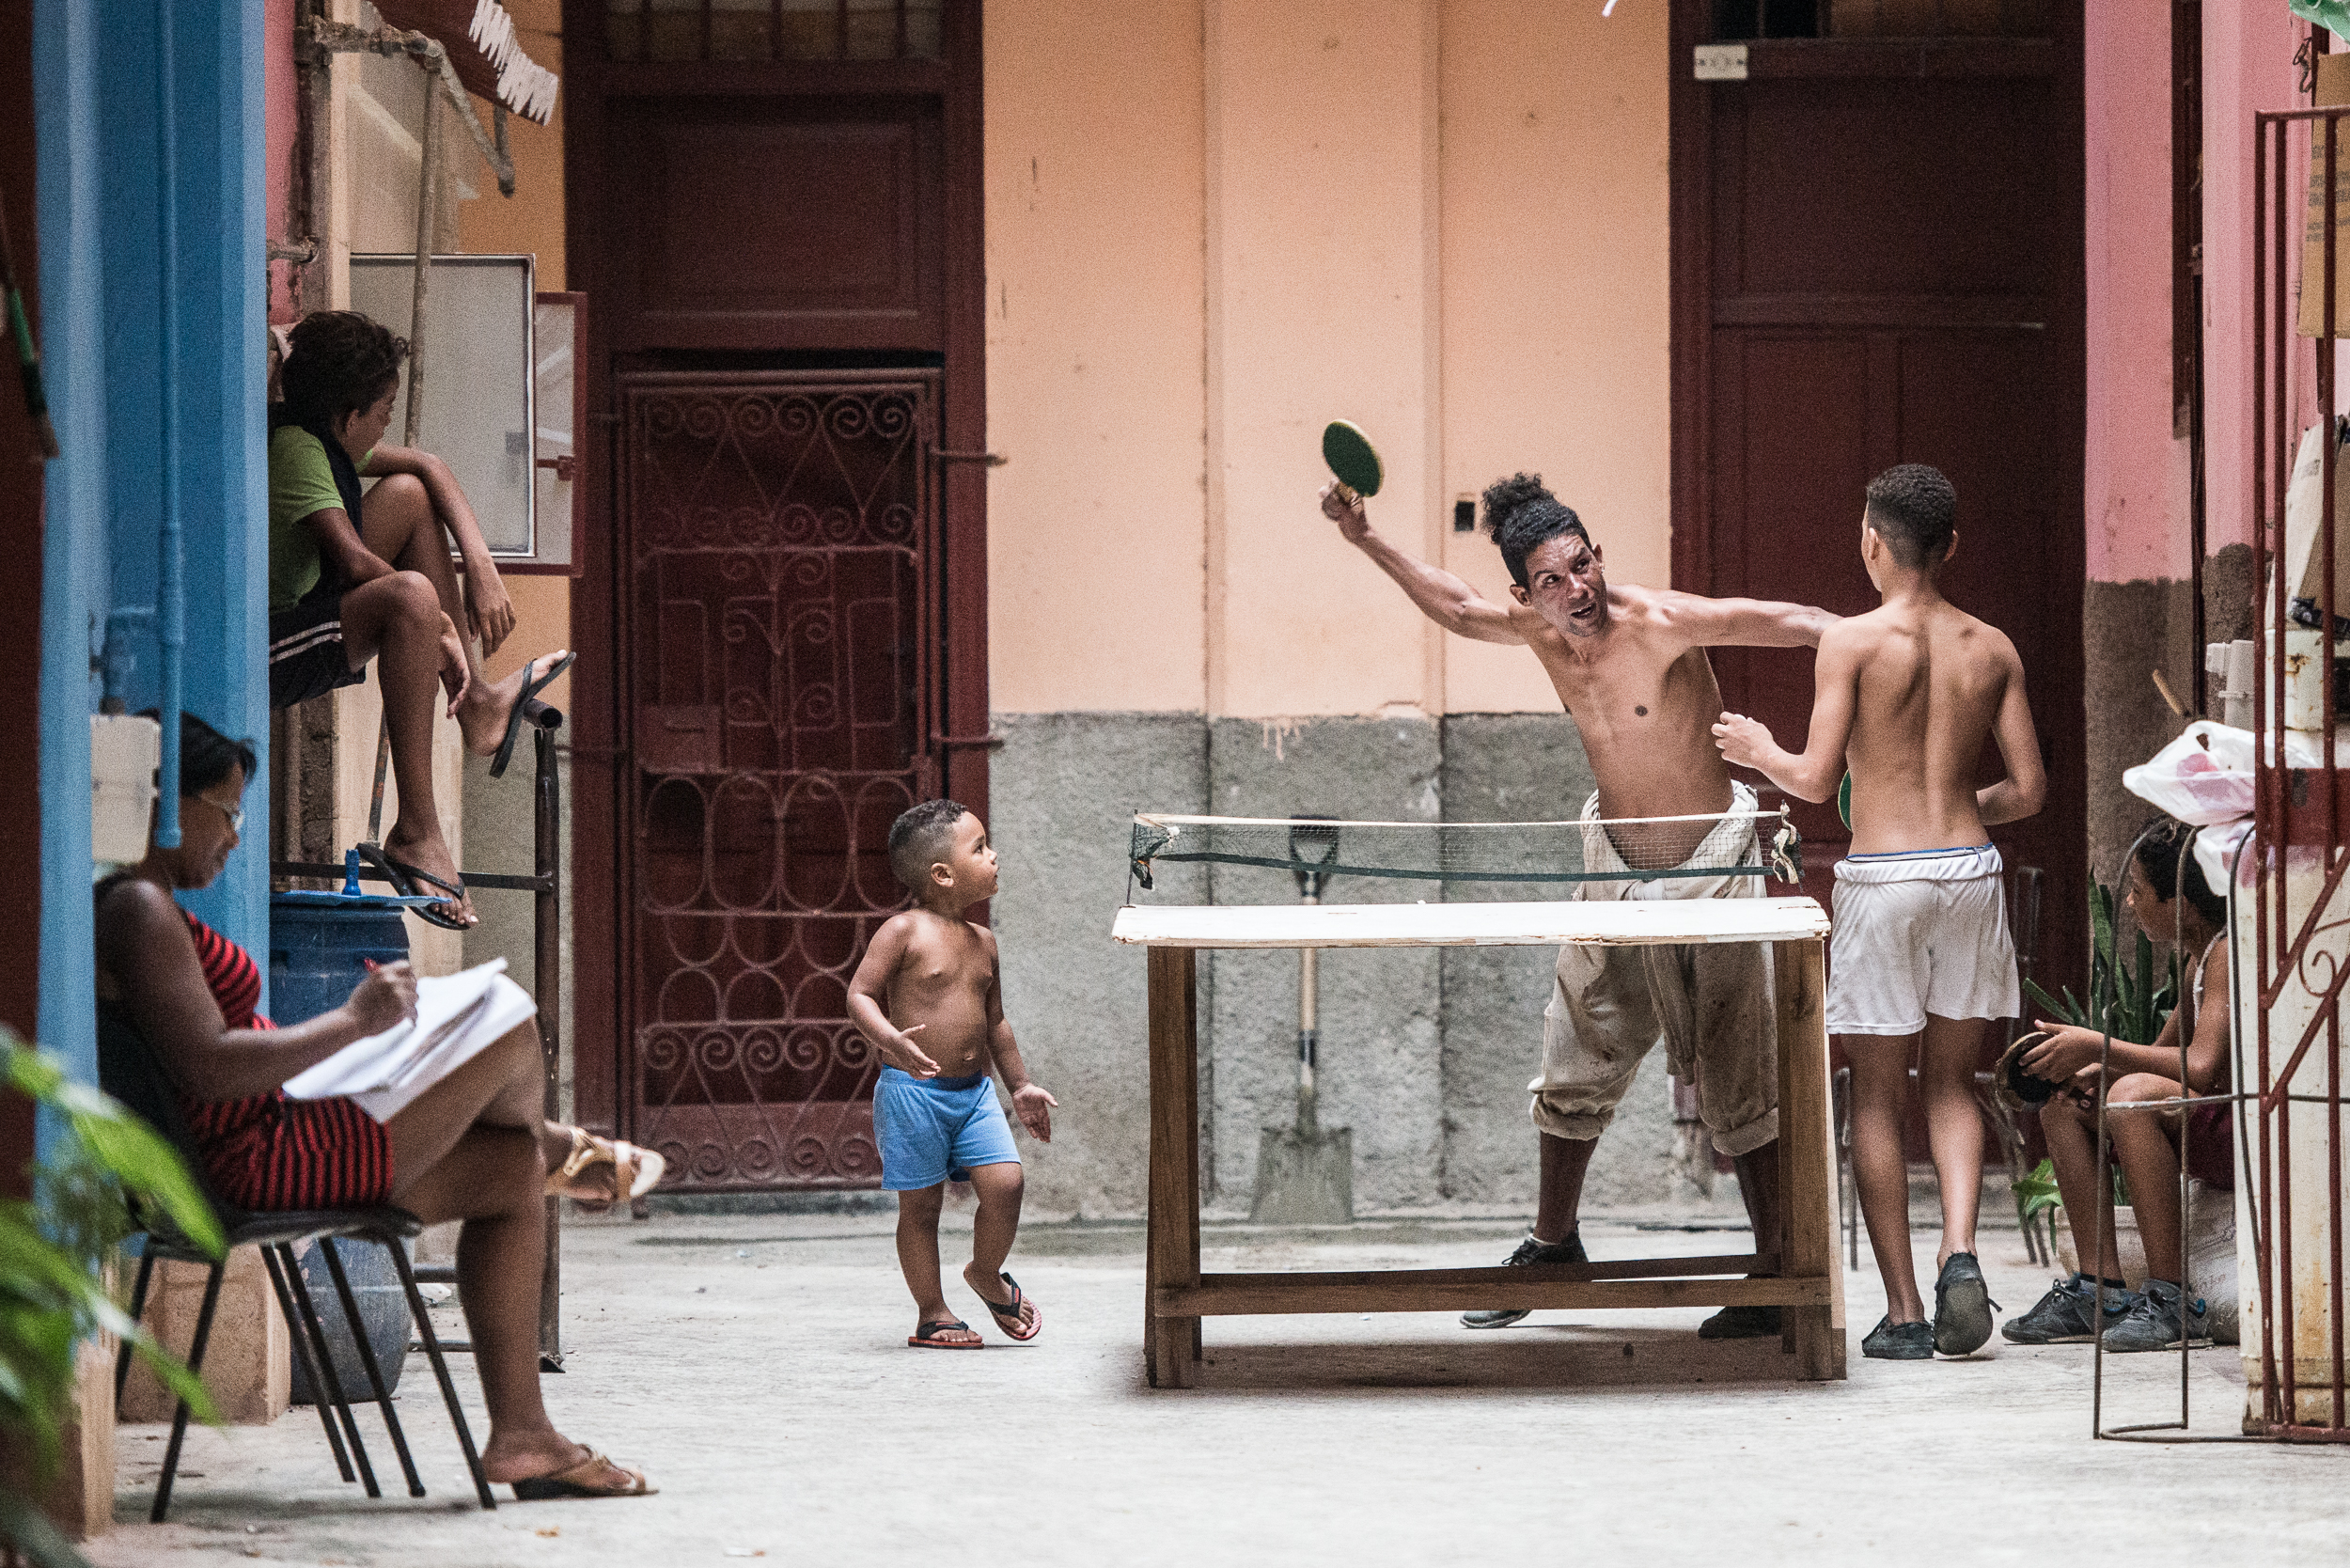 Ping pong Cuba - Travel - Photo credit Nicola Bailey.jpg